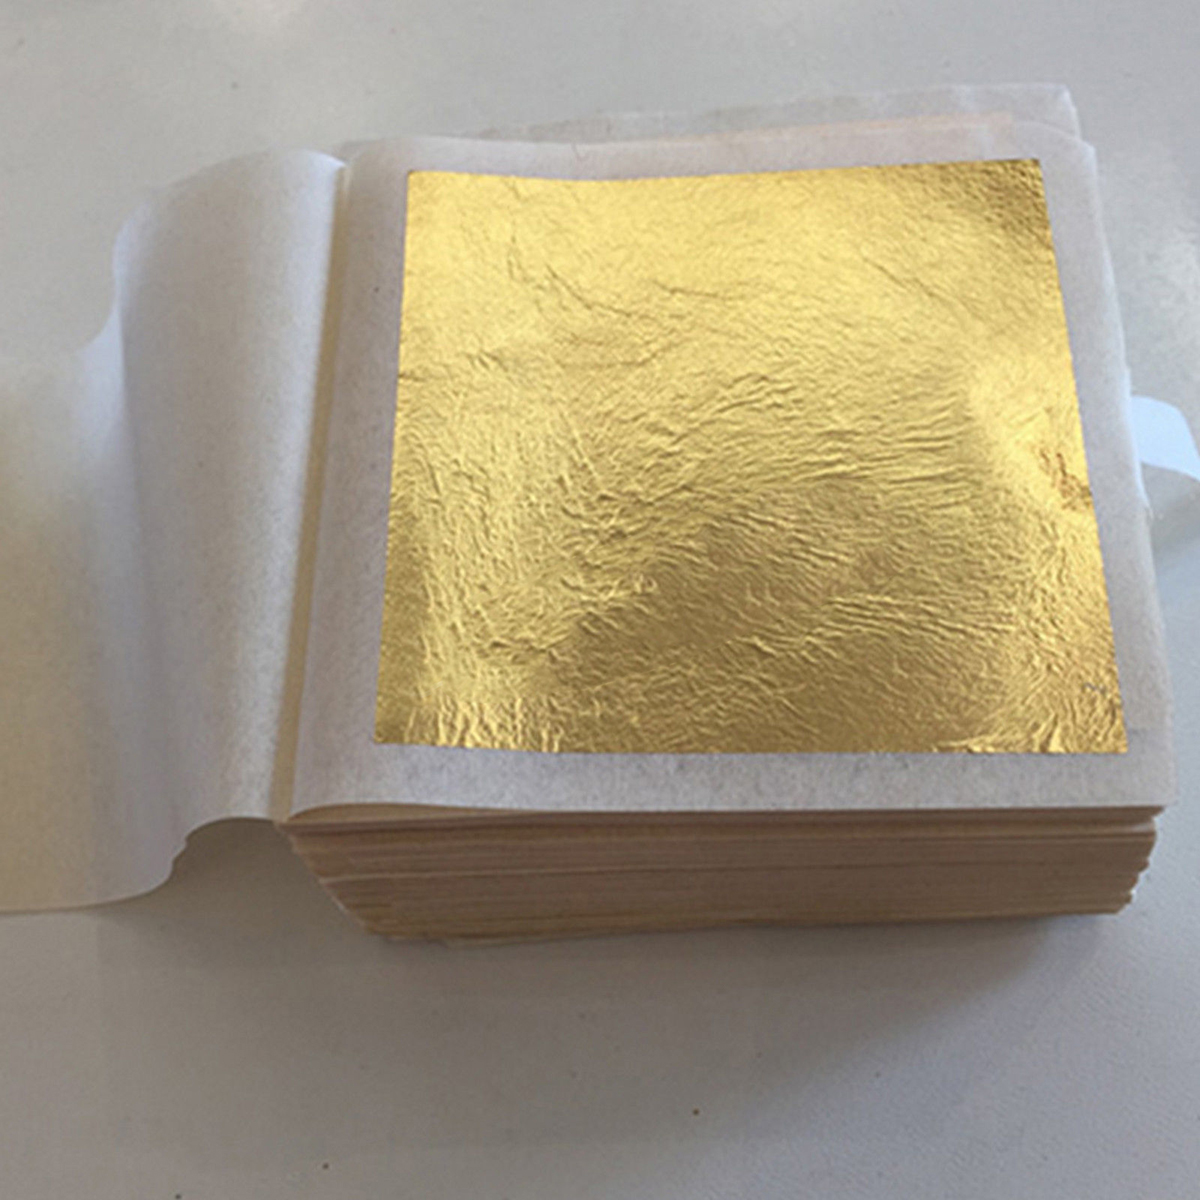 10 Sheets New Gold Foil Leaf 24K Food Anti-Aging Facial Spa Craft Gilding